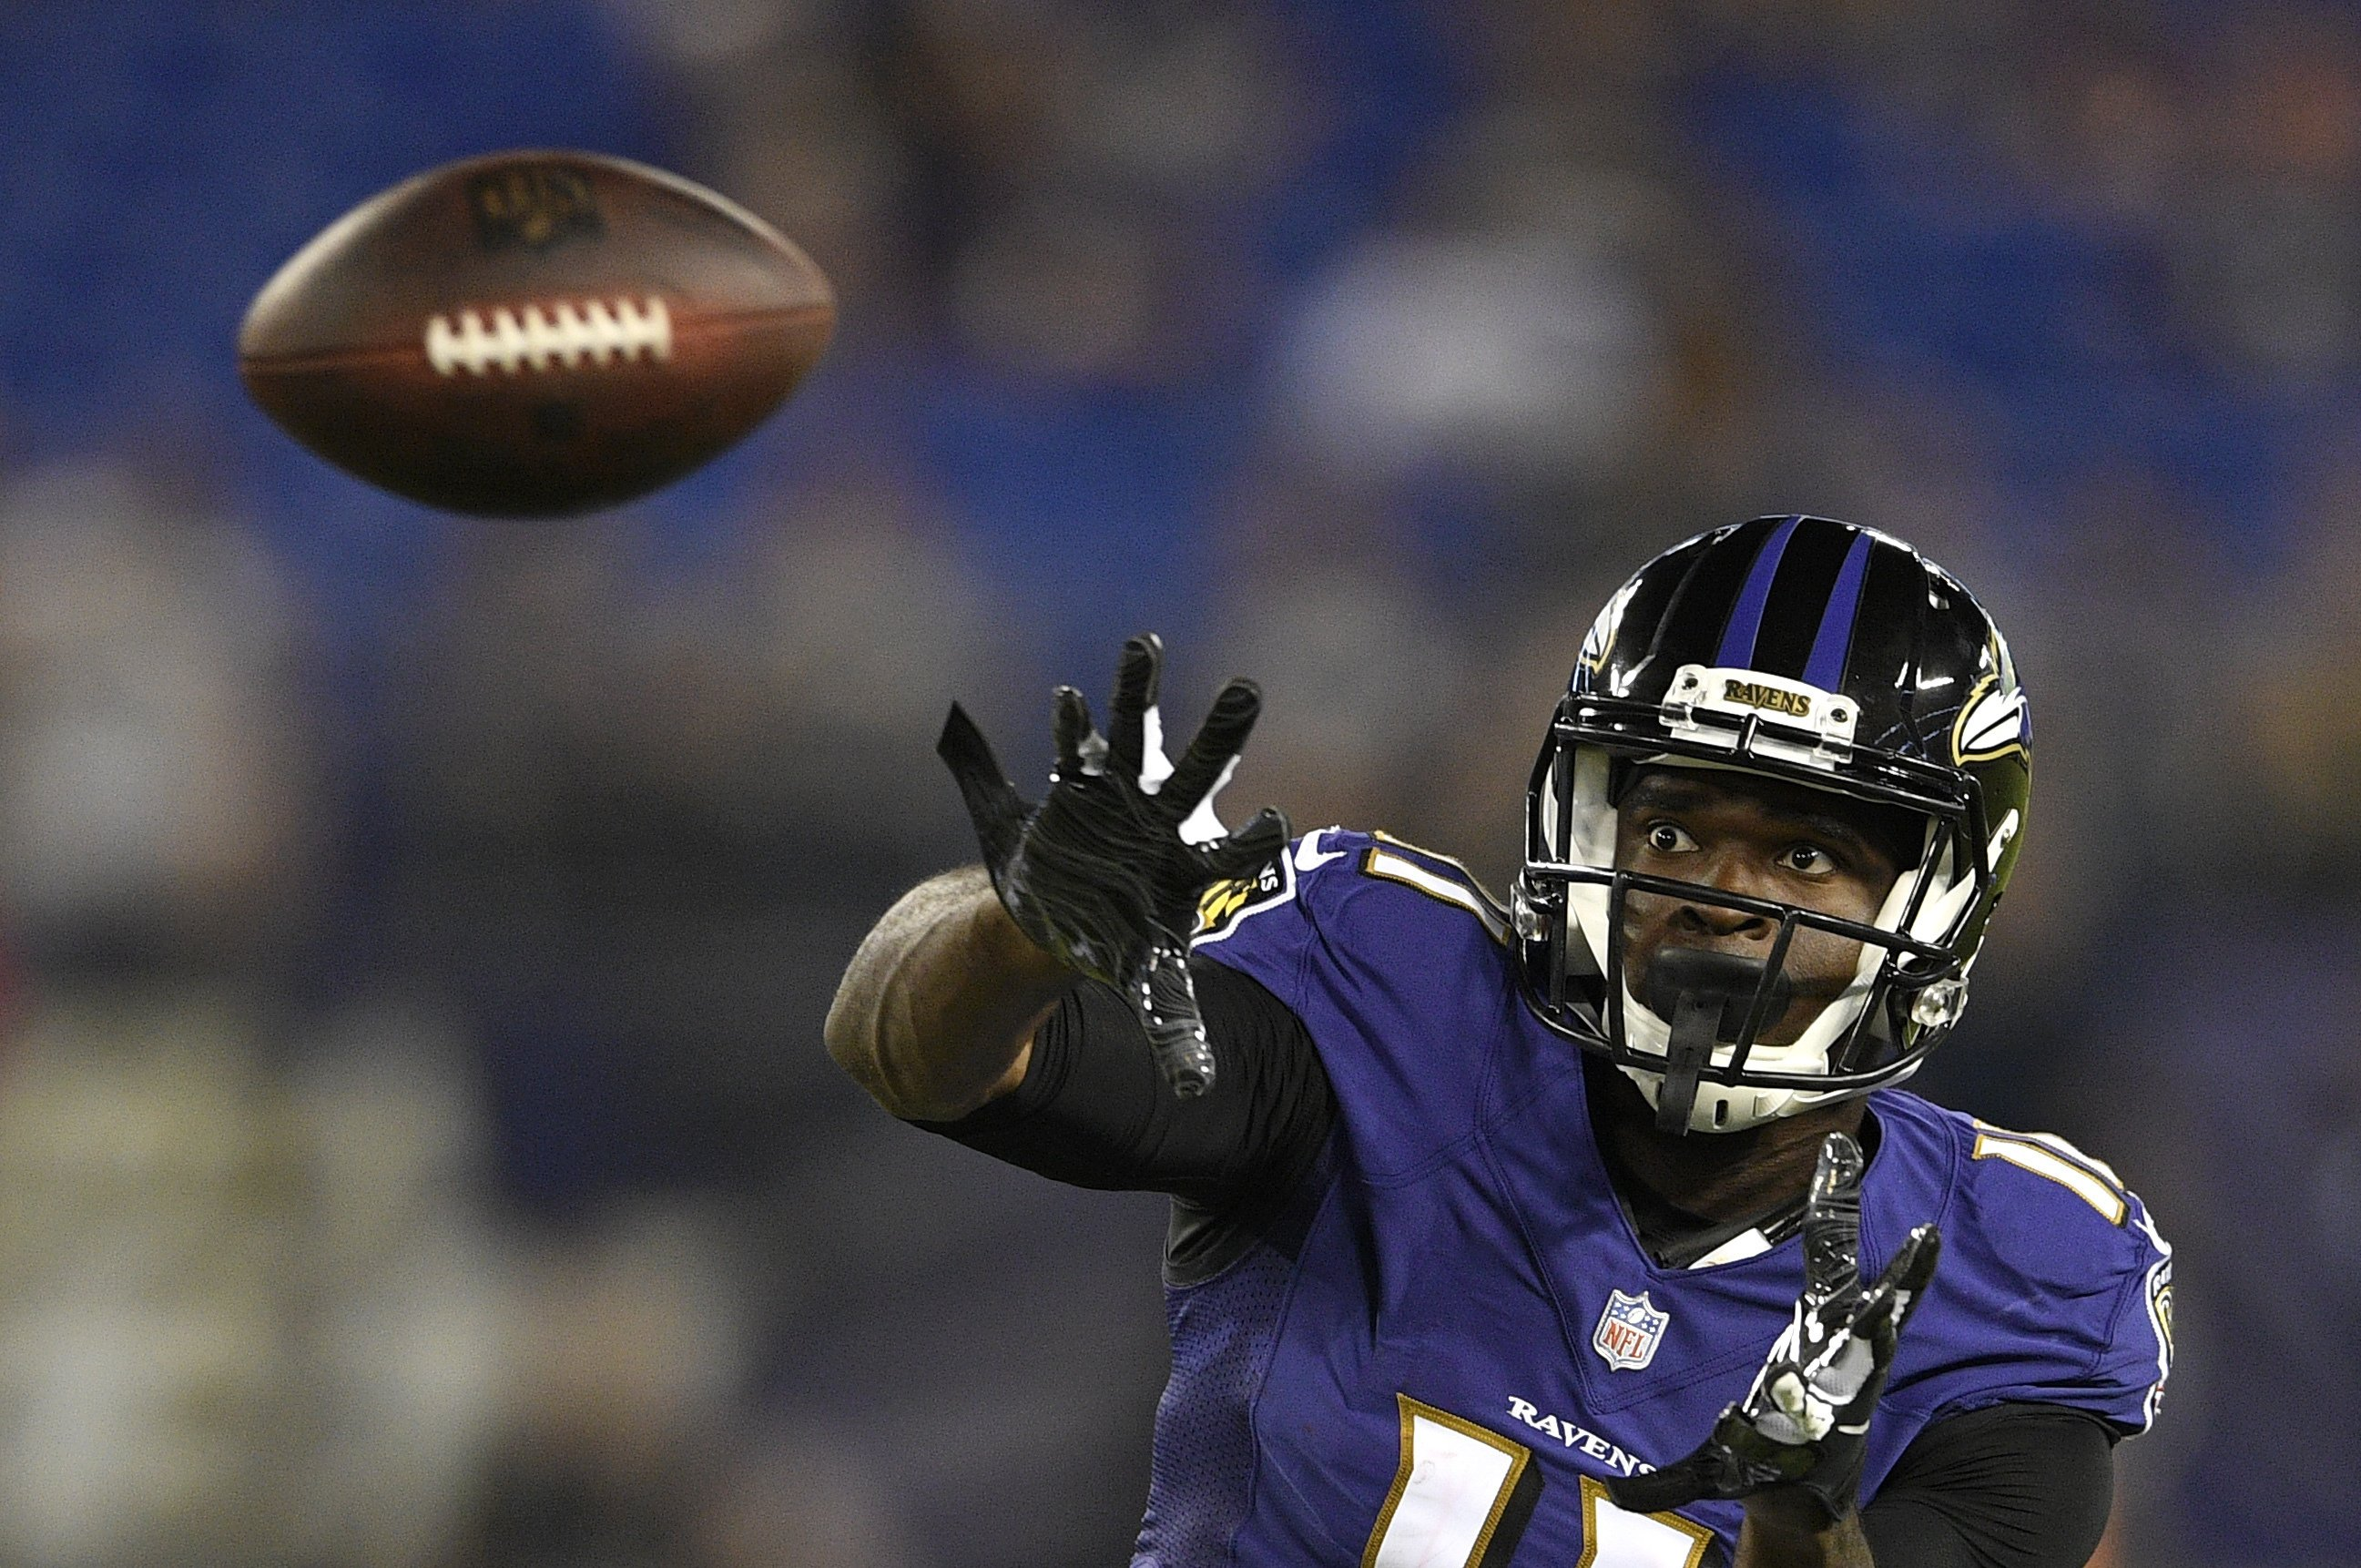 Browns signing WR Breshad Perriman after rash of injuries 52d13057a